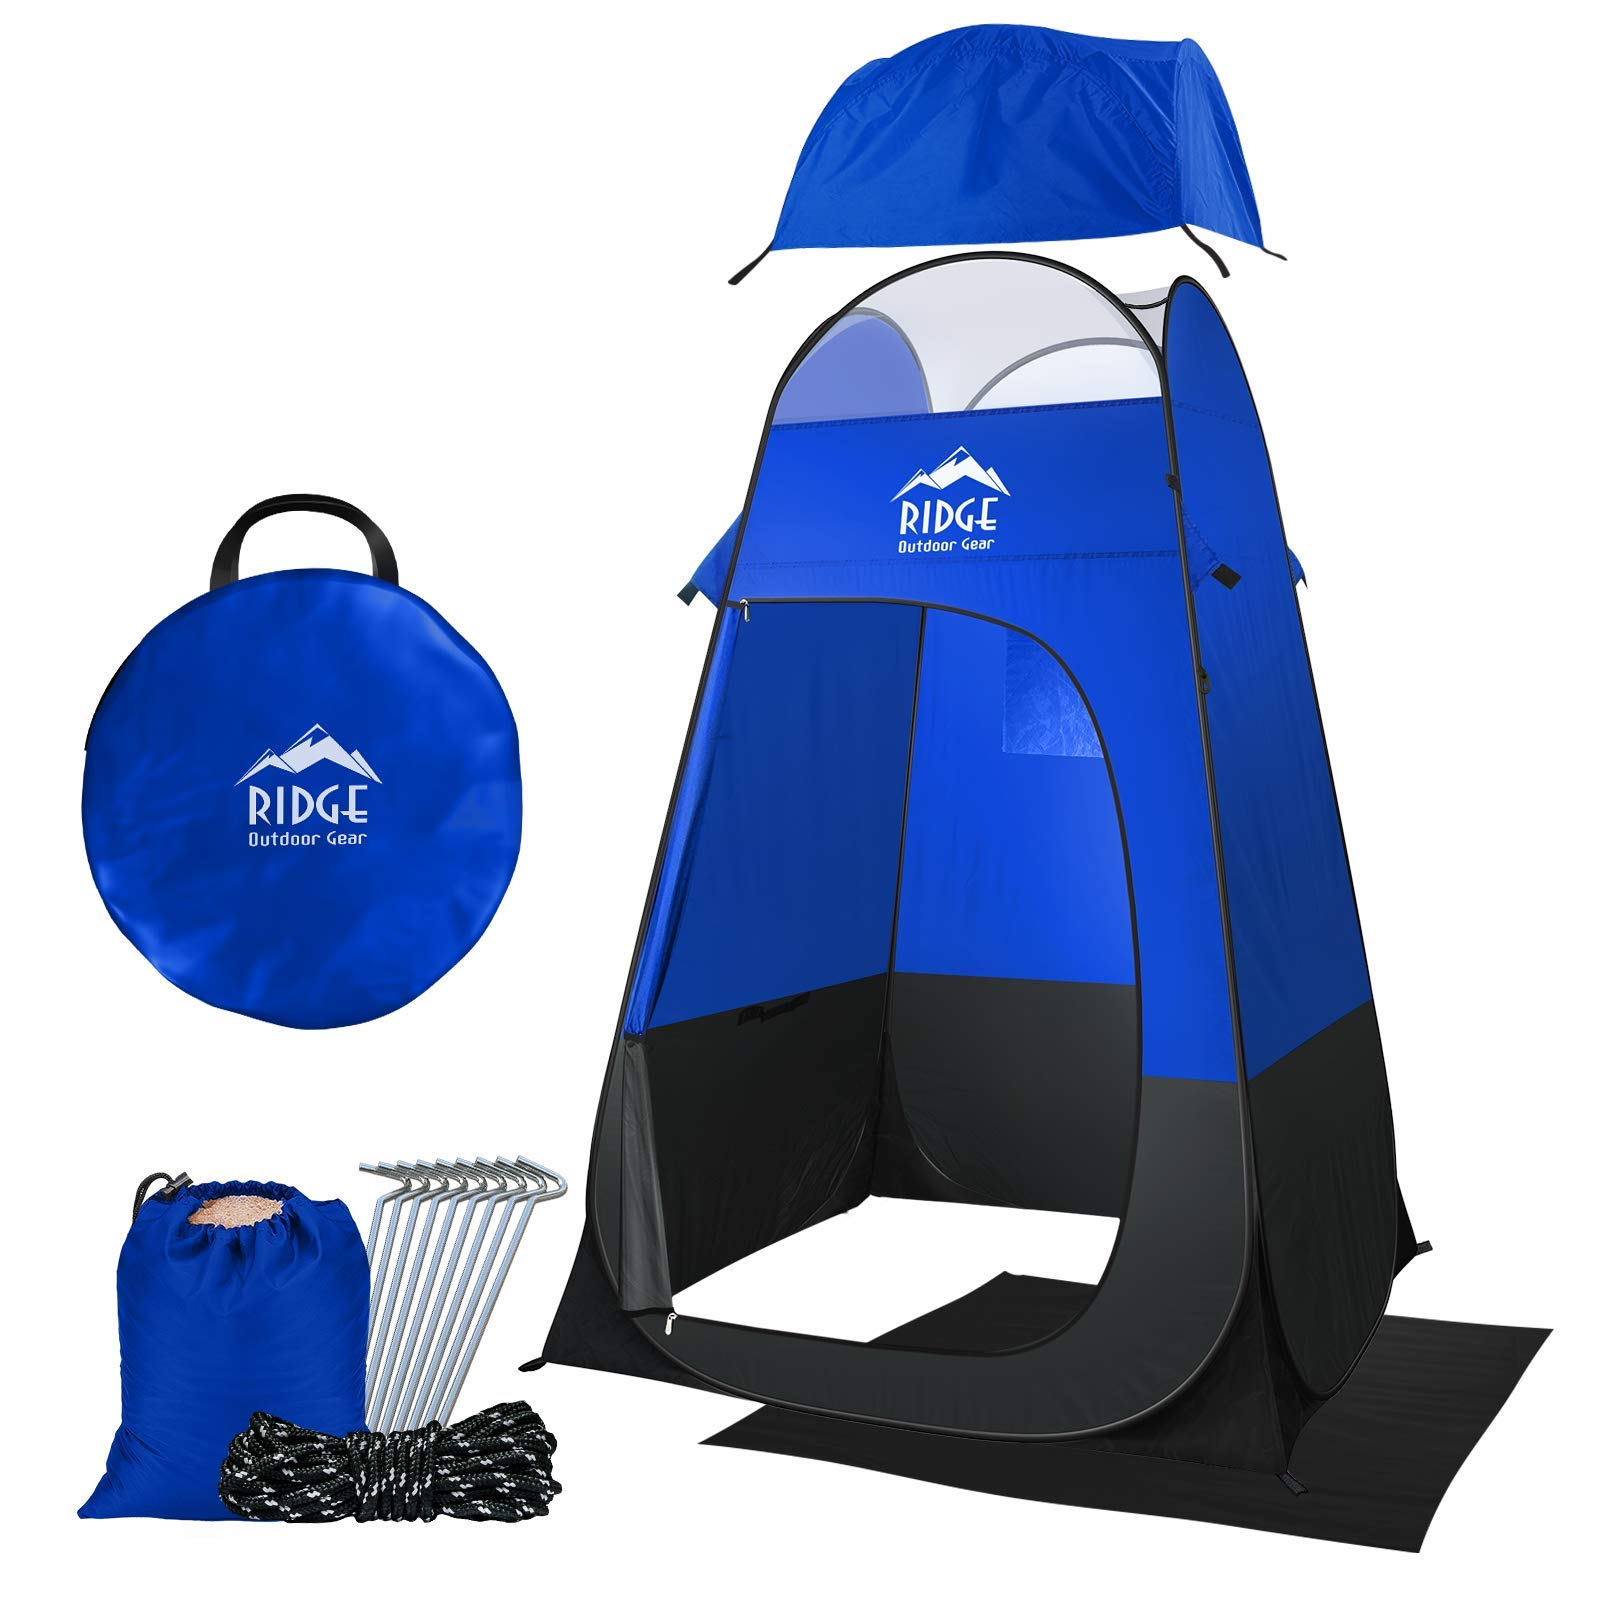 Ridge Outdoor Gear 6.5ft Pop Up Changing Shower Privacy Tent - Portable Utility Shelter Room with rainfly Ground Sheet for Camping Shower Toilet Bathroom Trade Shows Beach Spray tan popup by Ridge Outdoor Gear